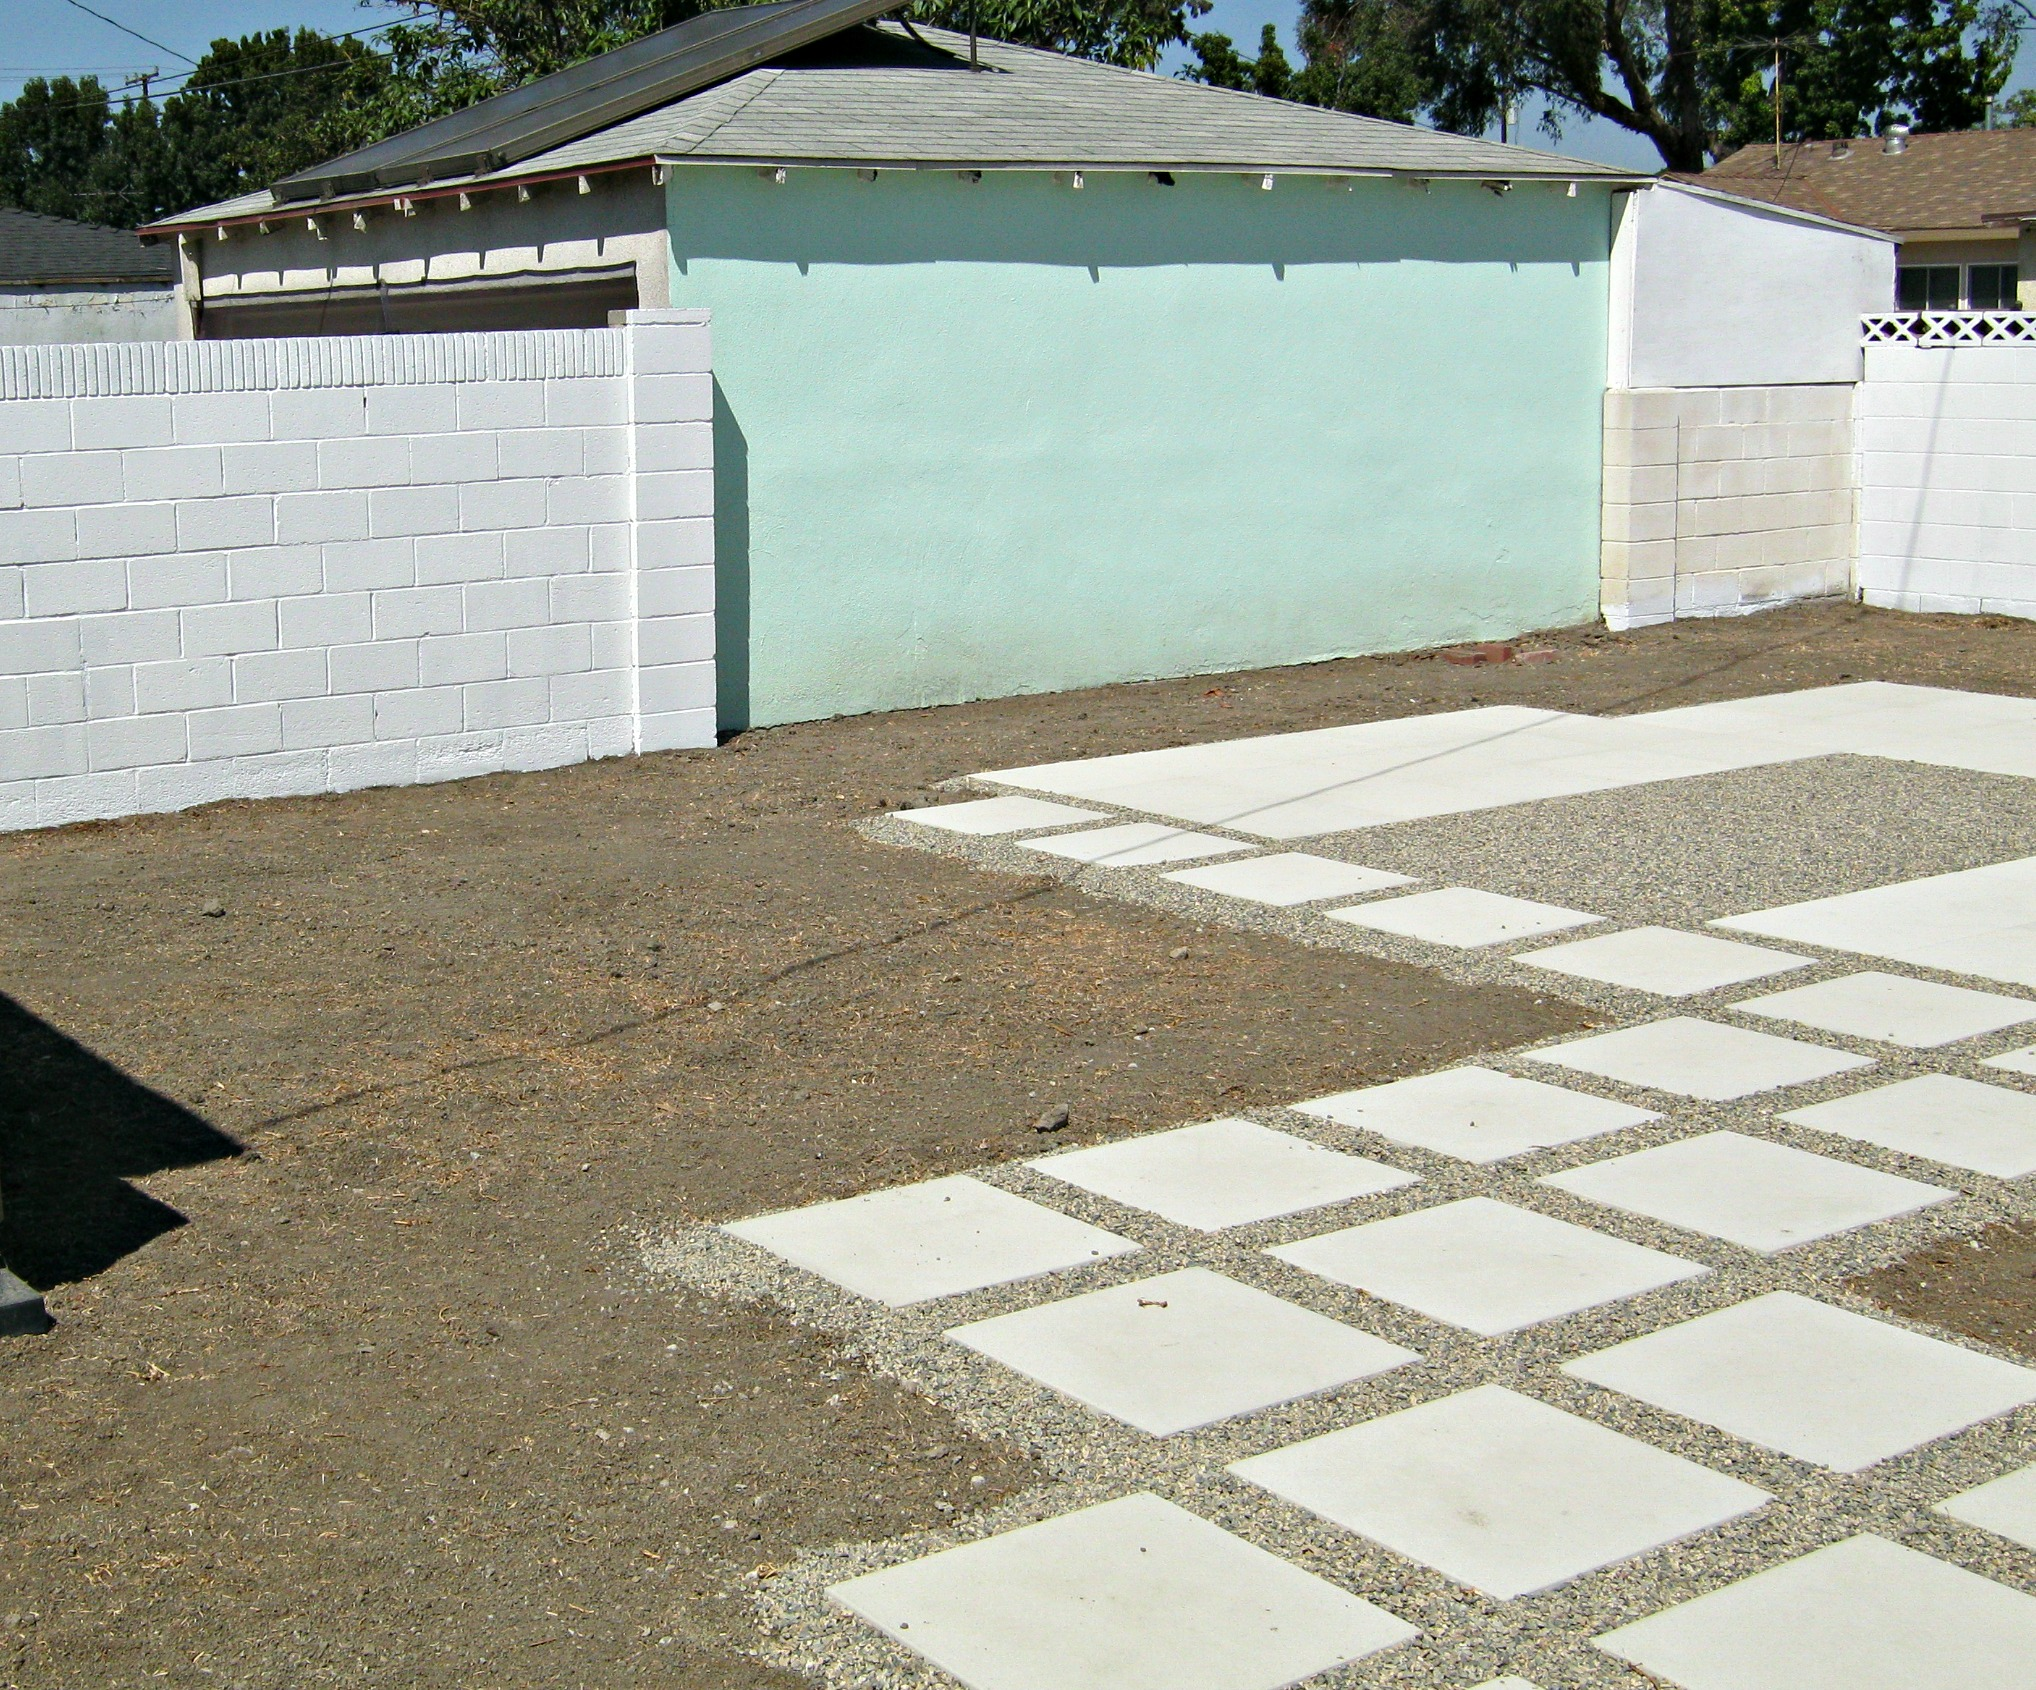 Painted cinder block wall texture - Primer Applied To Cinderblock Walls Not Garage